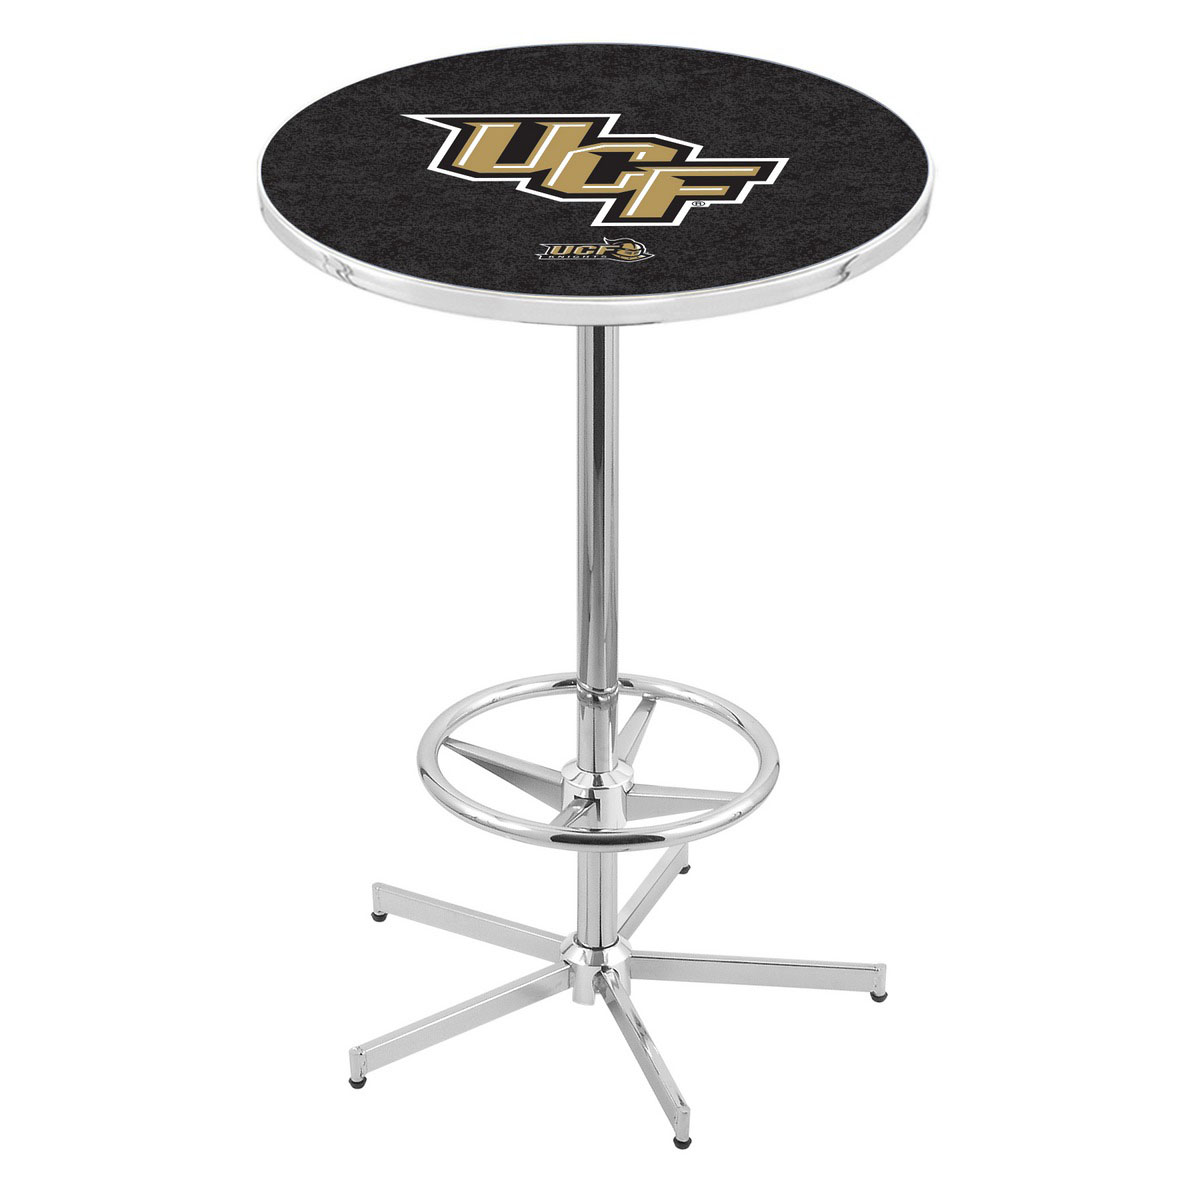 Info about Chrome Central Florida Pub Table Product Photo